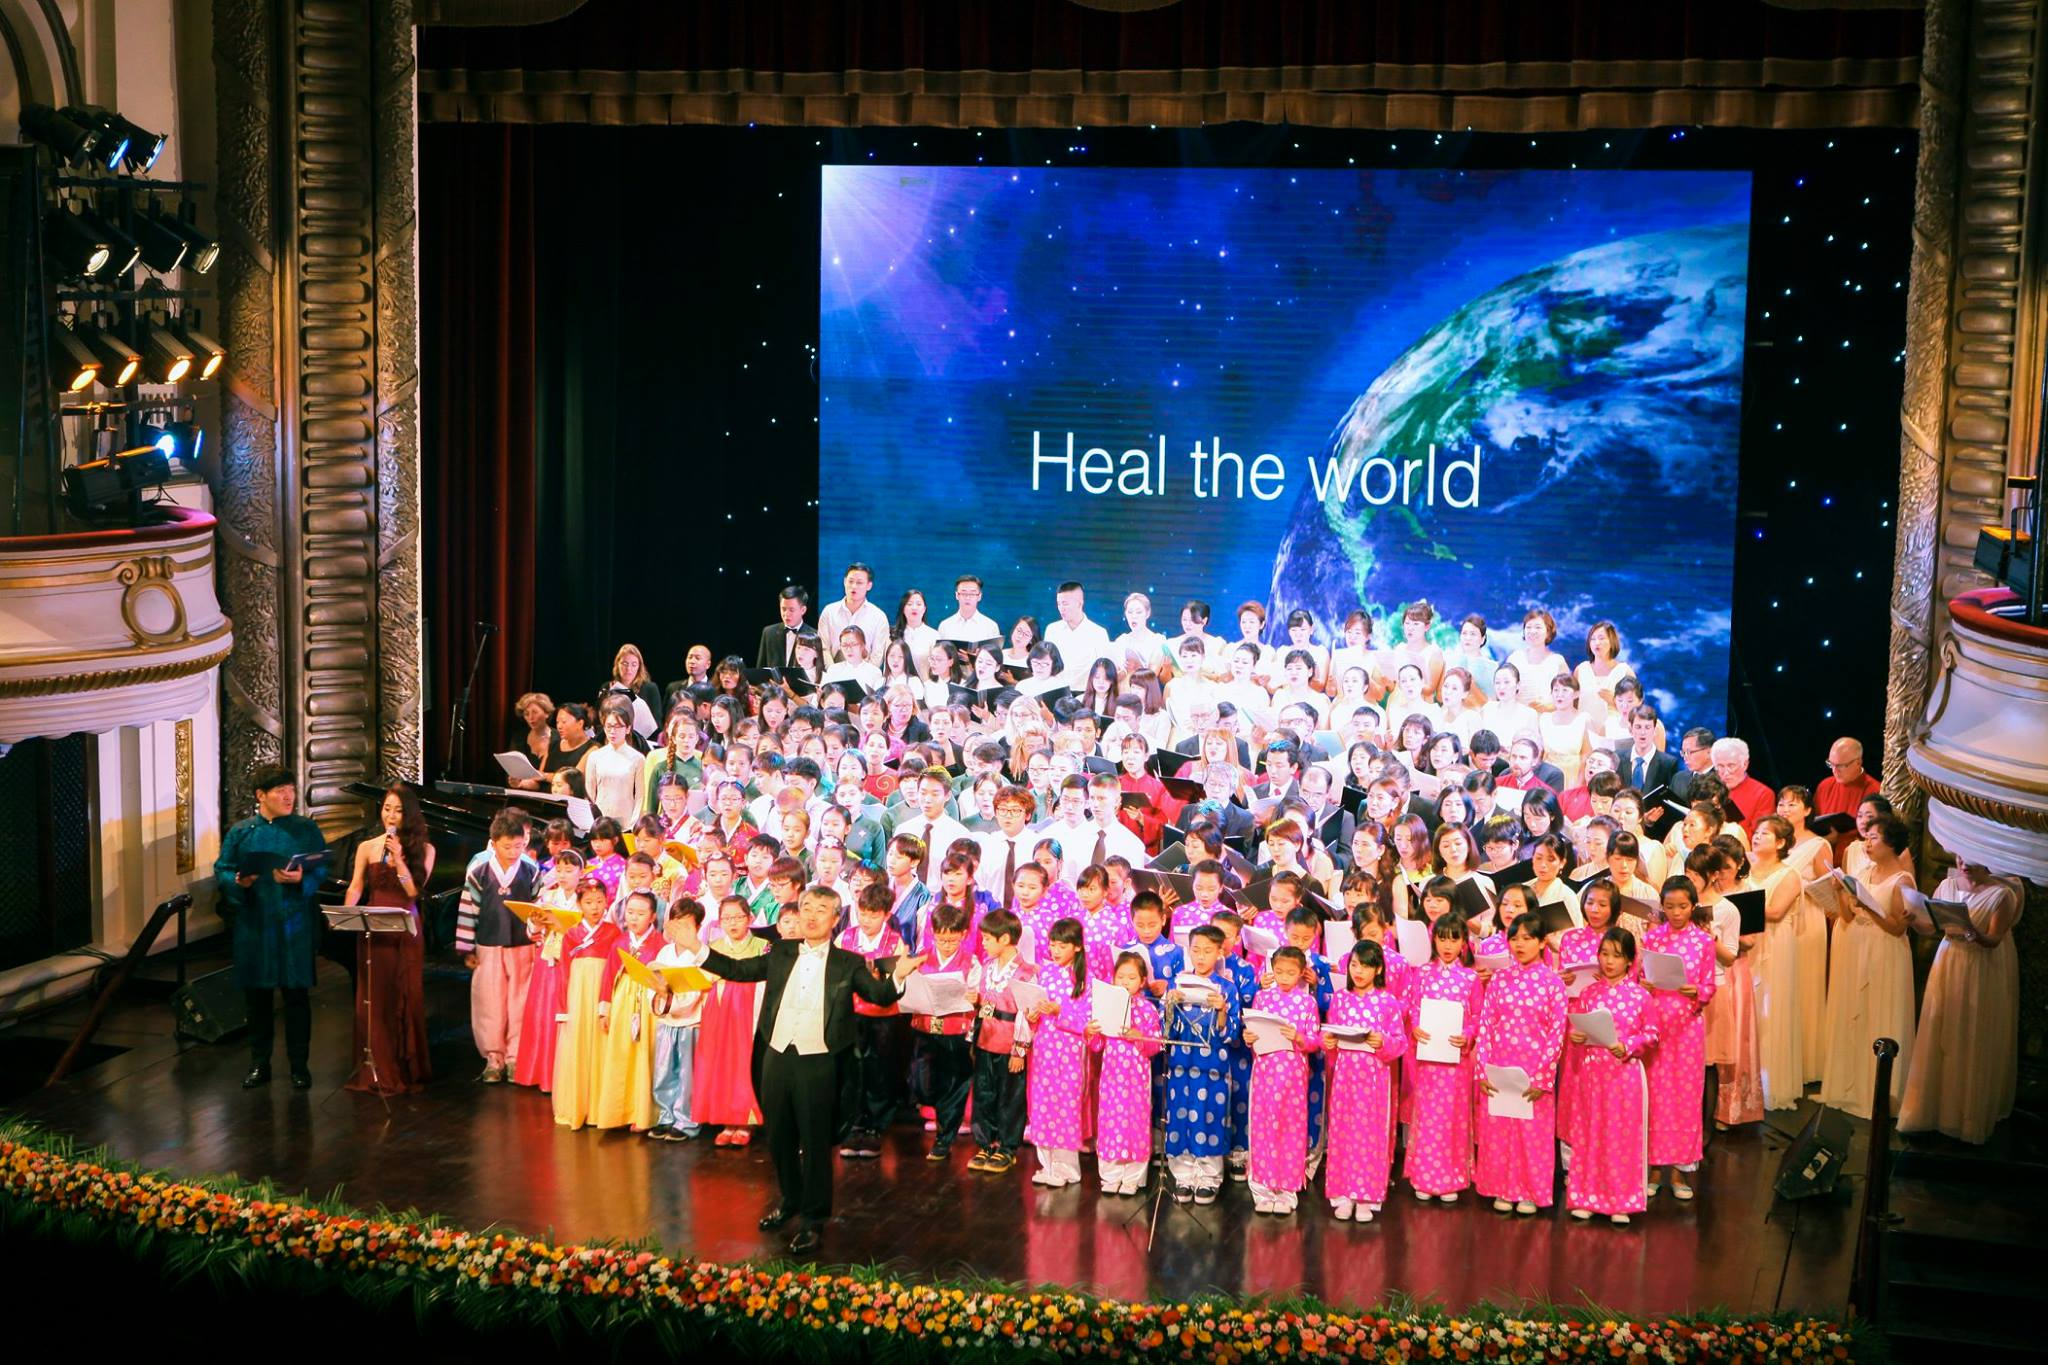 the hanoi miracle choir and orchestra: when music changes life hinh 4